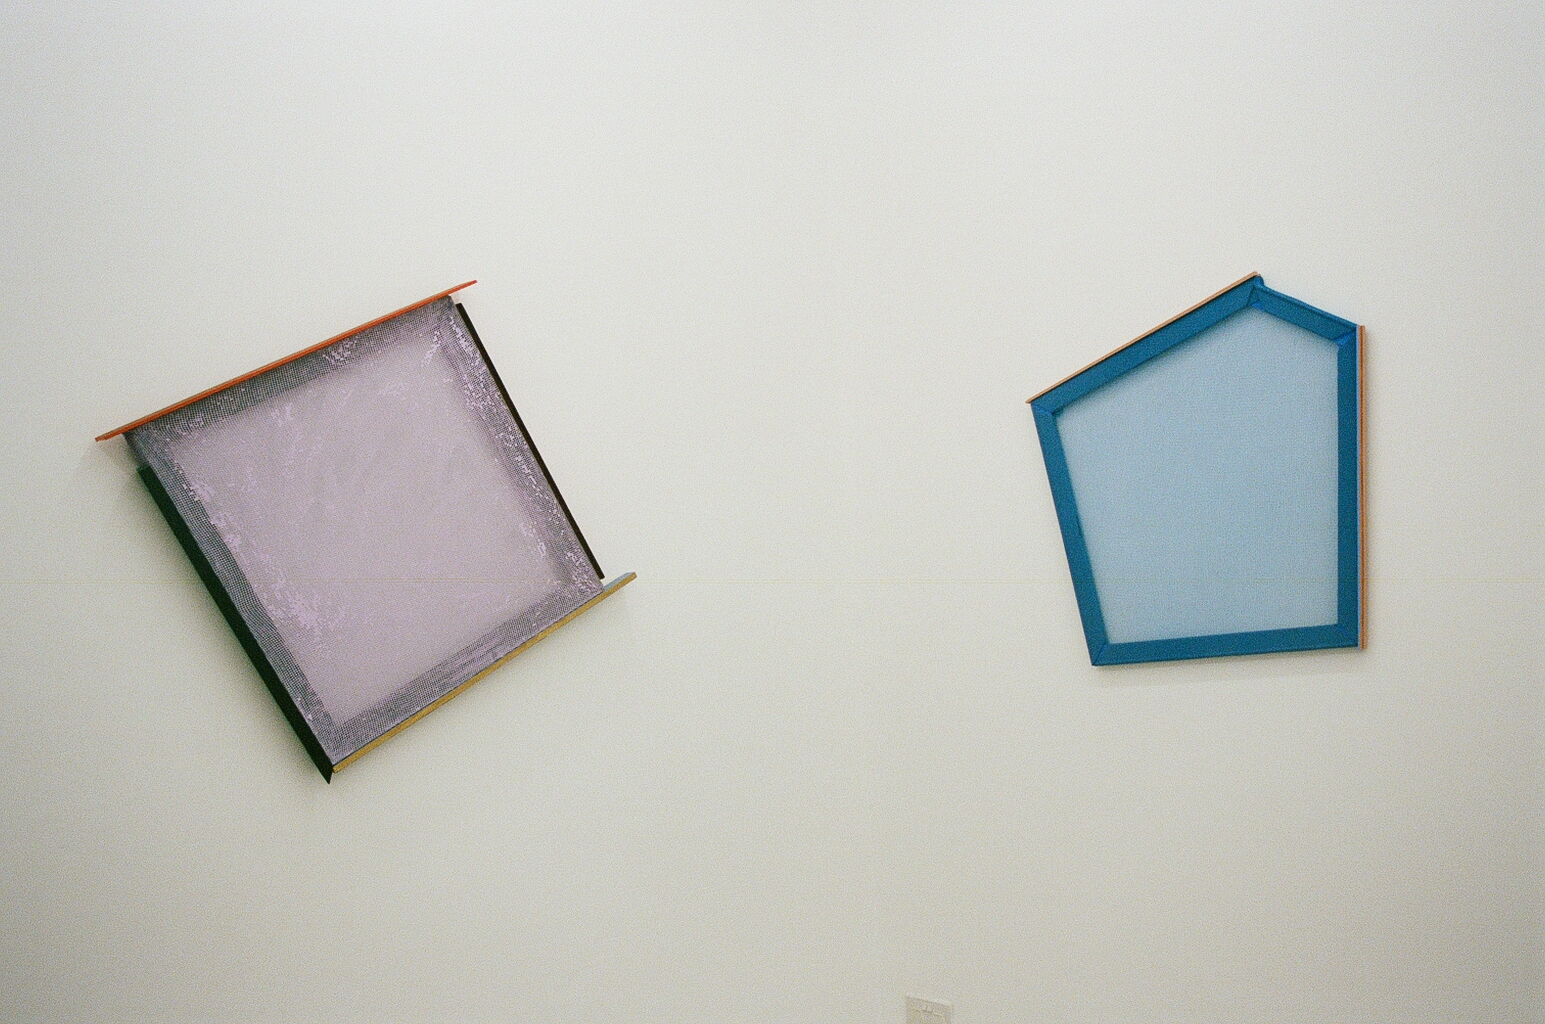 Composition 33  (L) and  Composition 31  (R), HelenA Pritchard 2018, Installation View